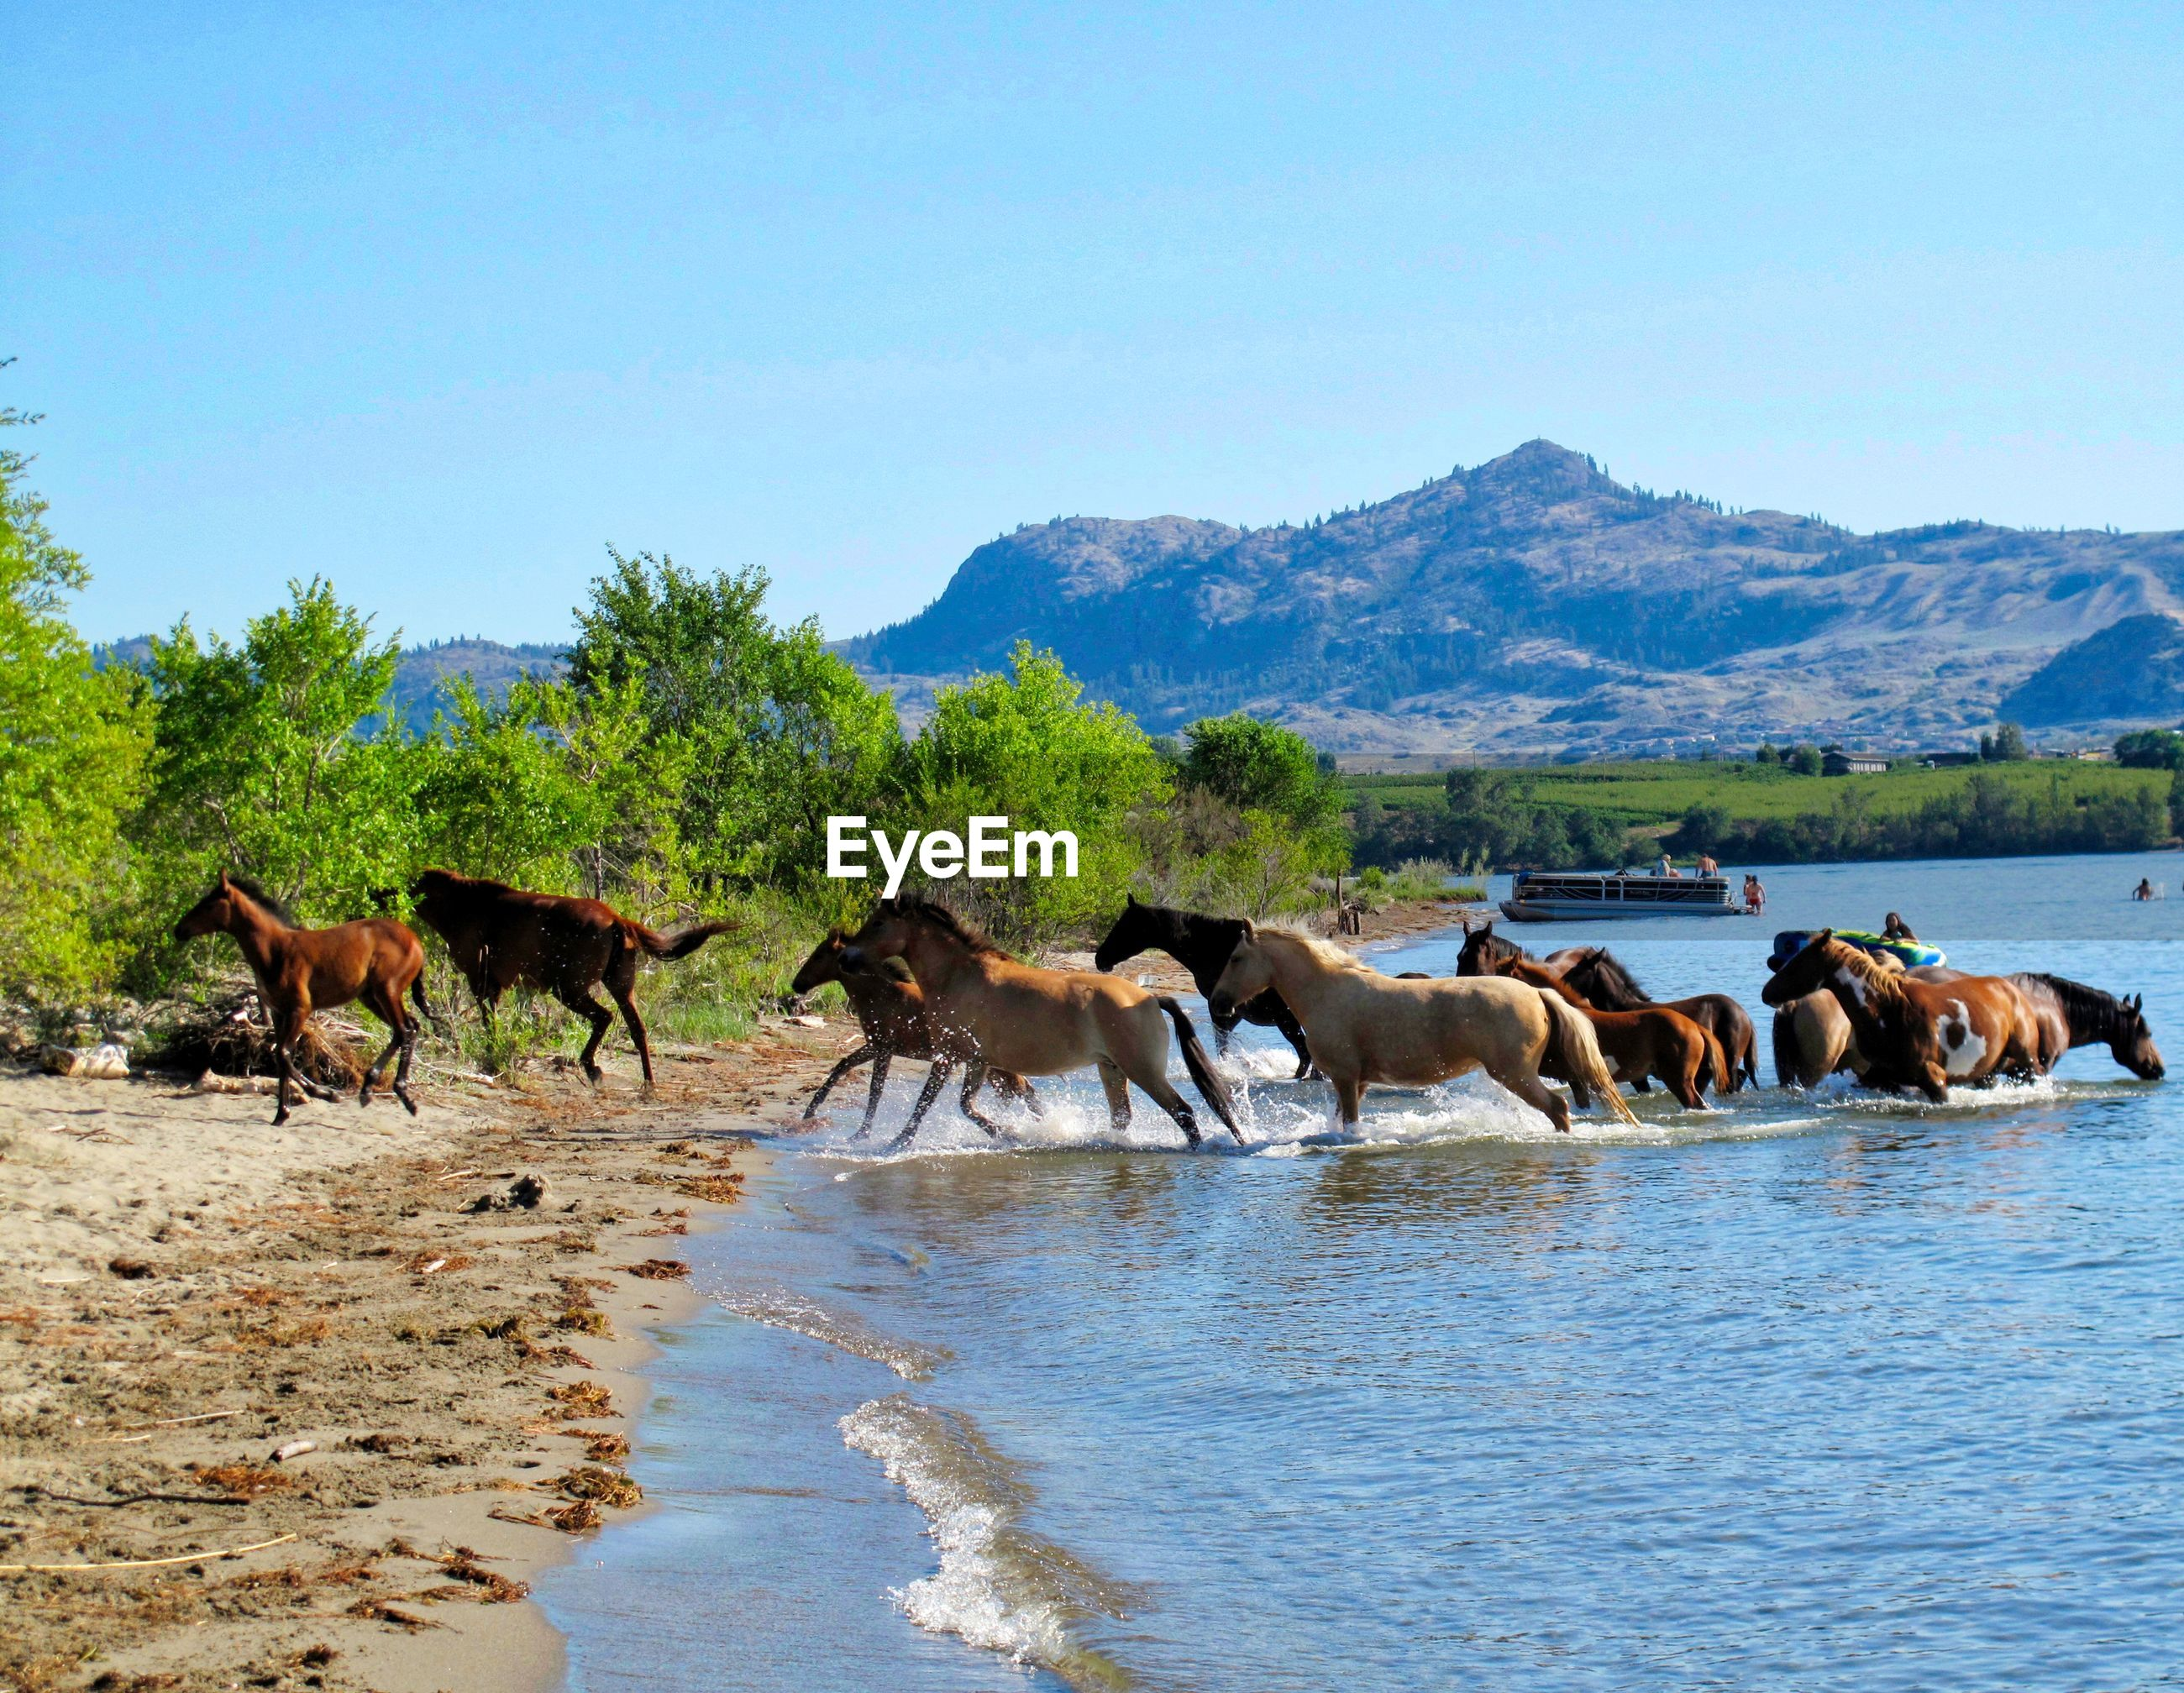 Wild horses running out of a lake